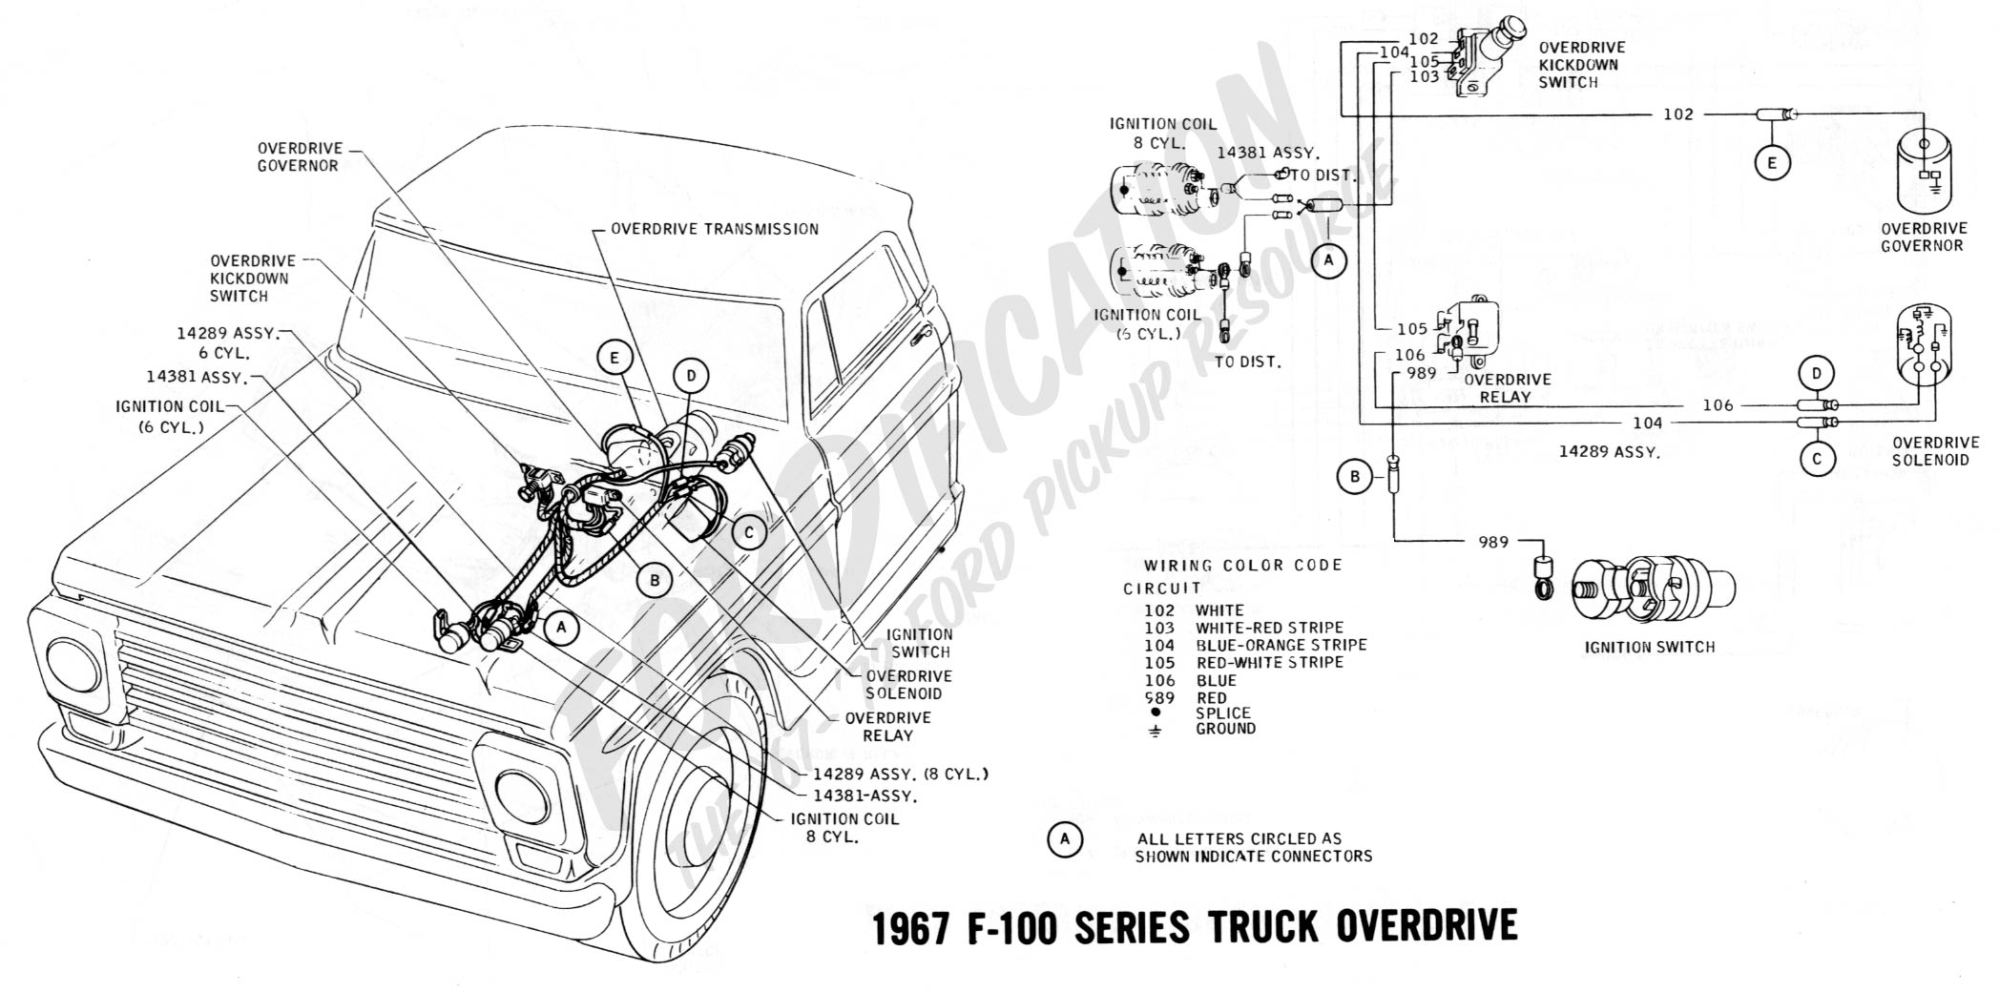 hight resolution of 1978 ford f150 truck fuse box wiring diagram source 99 f150 fuse box diagram 1973 ford f150 fuse box diagram